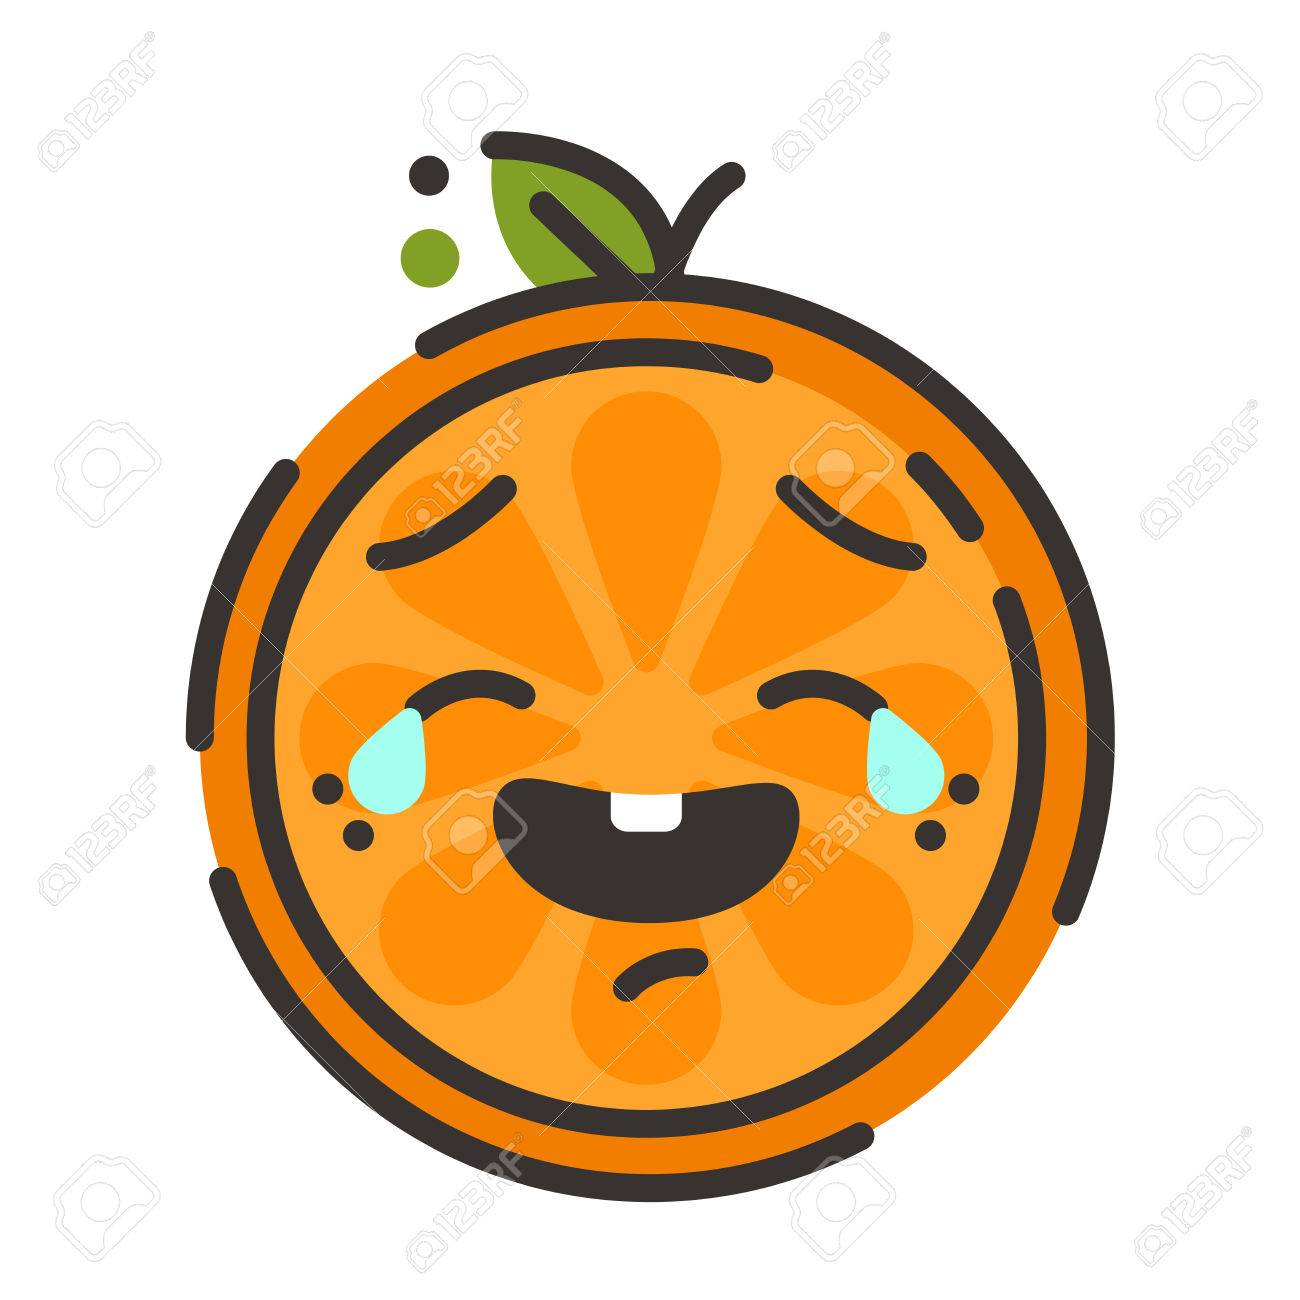 Laugh With Tears Emoji Laughing Orange Fruit Vector Flat Design Emoticon